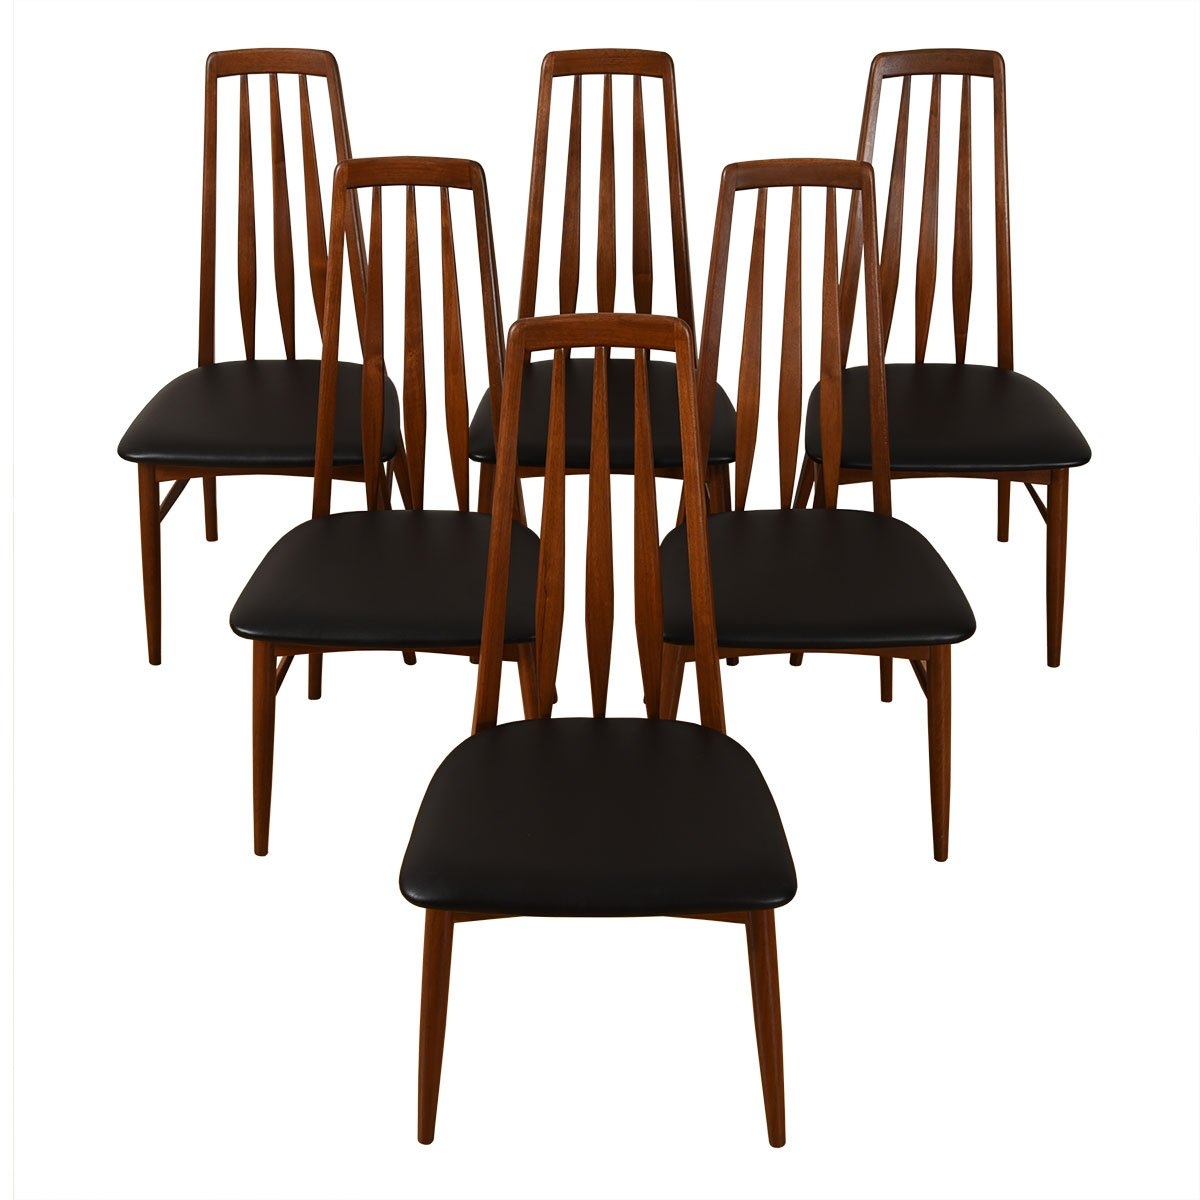 Walnut Set of 6 Koefoeds Hornslet Danish Modern Side Dining Chairs